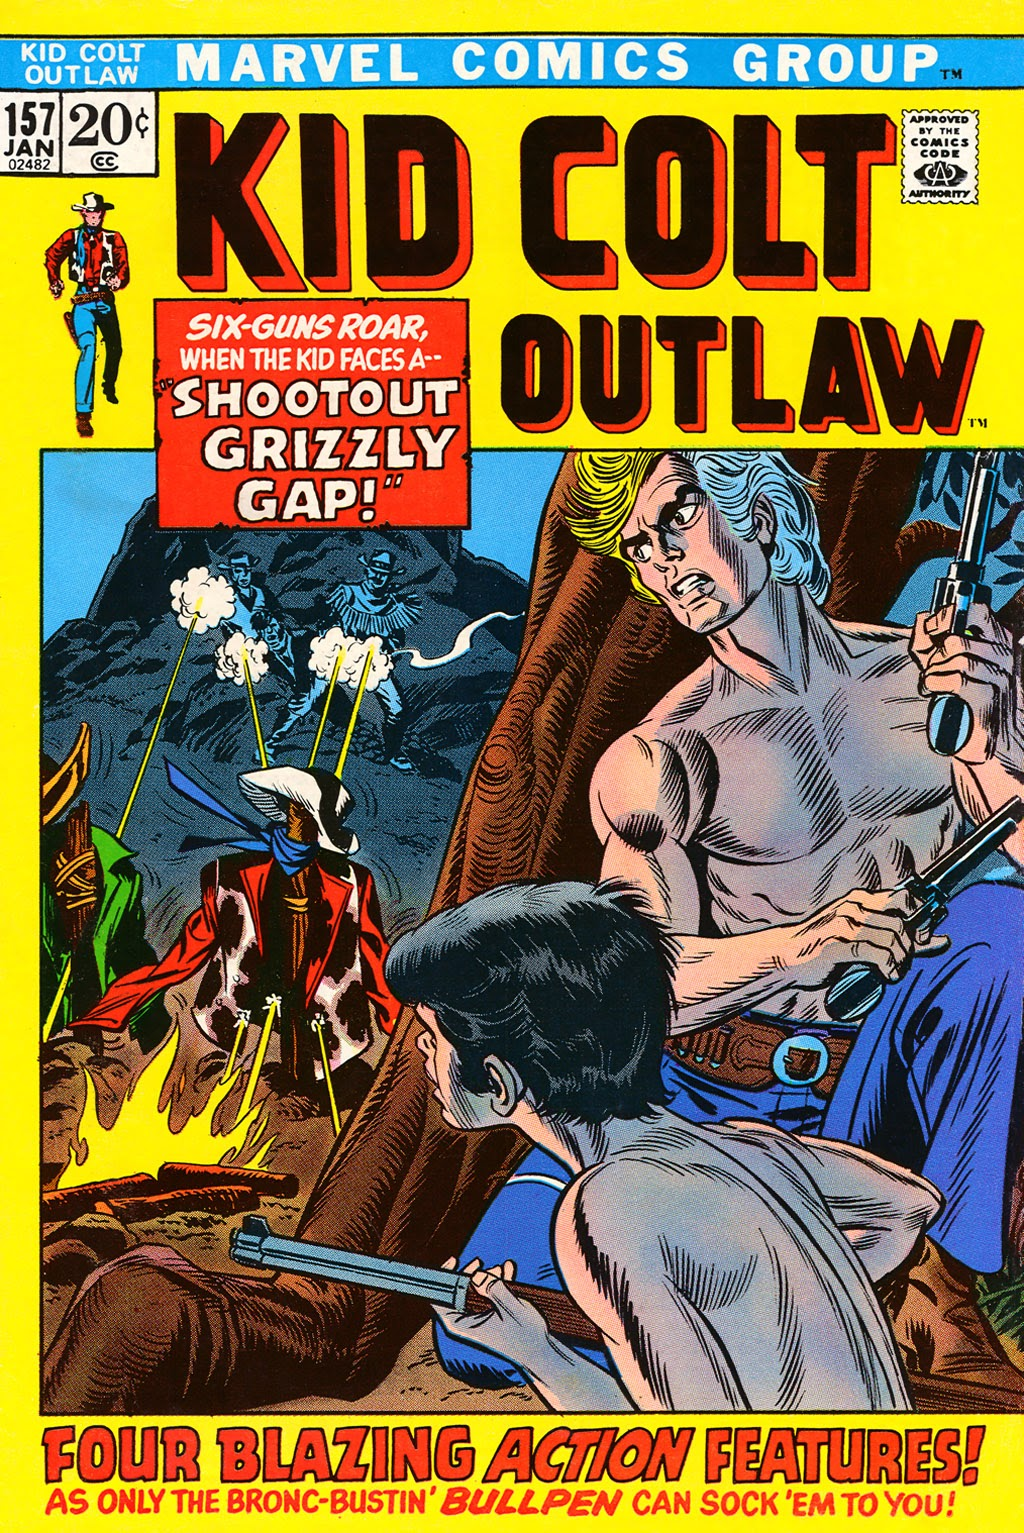 Kid Colt Outlaw issue 157 - Page 1